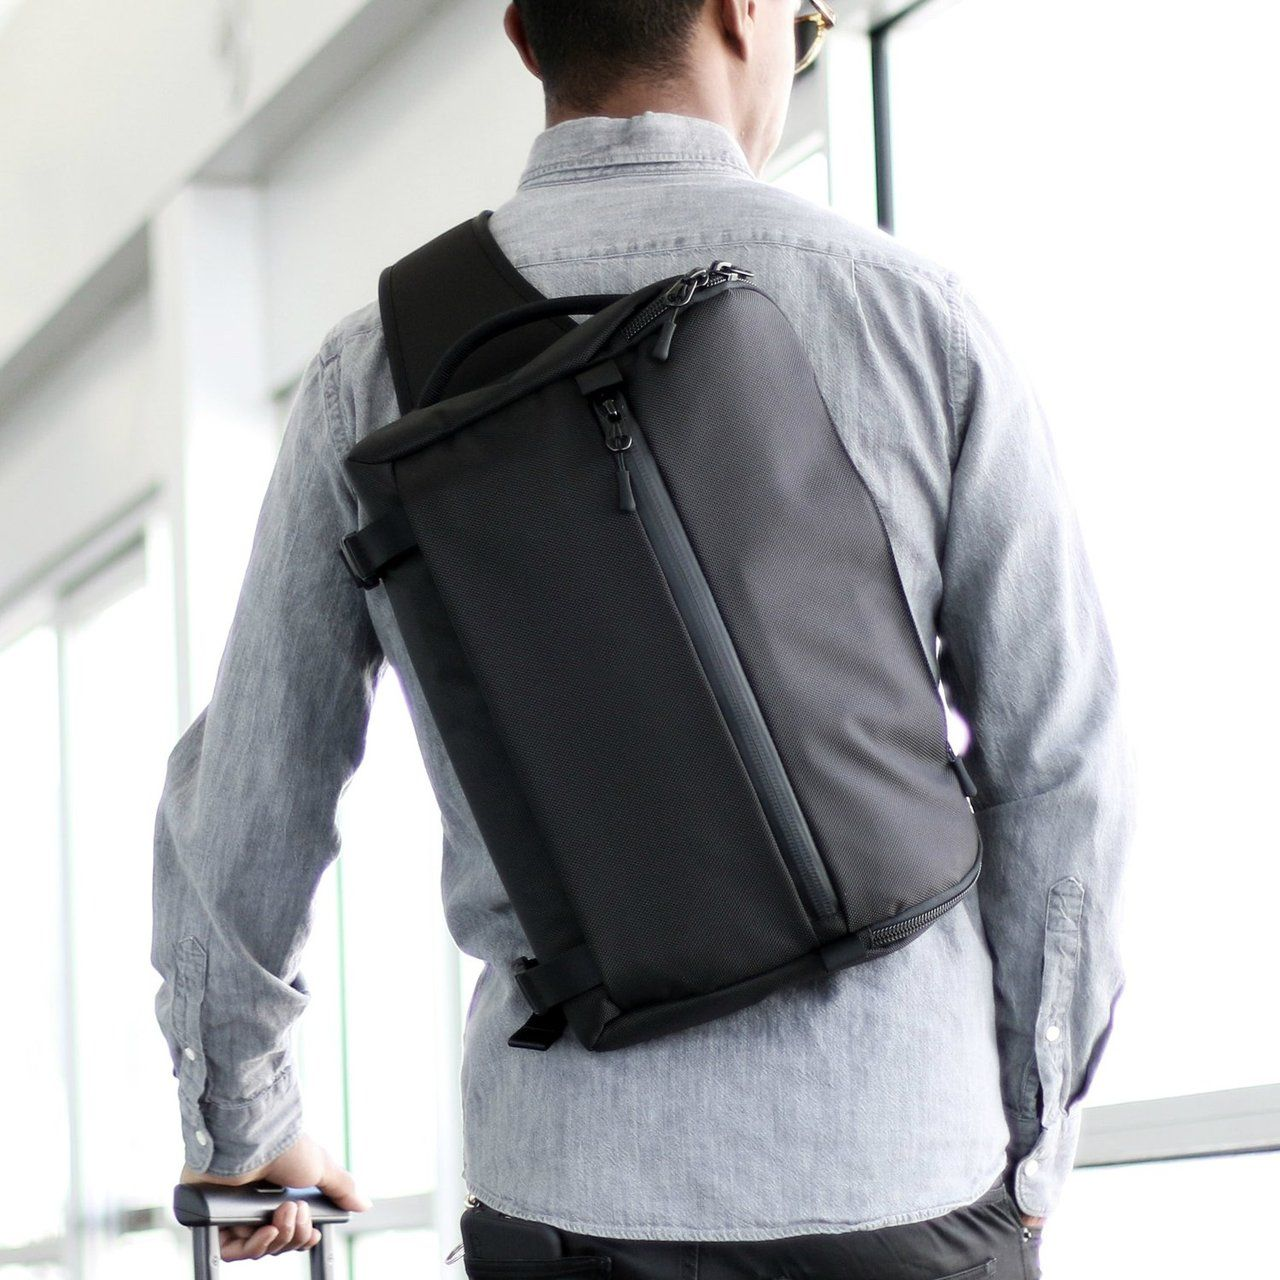 Fancy | Aer Travel Sling